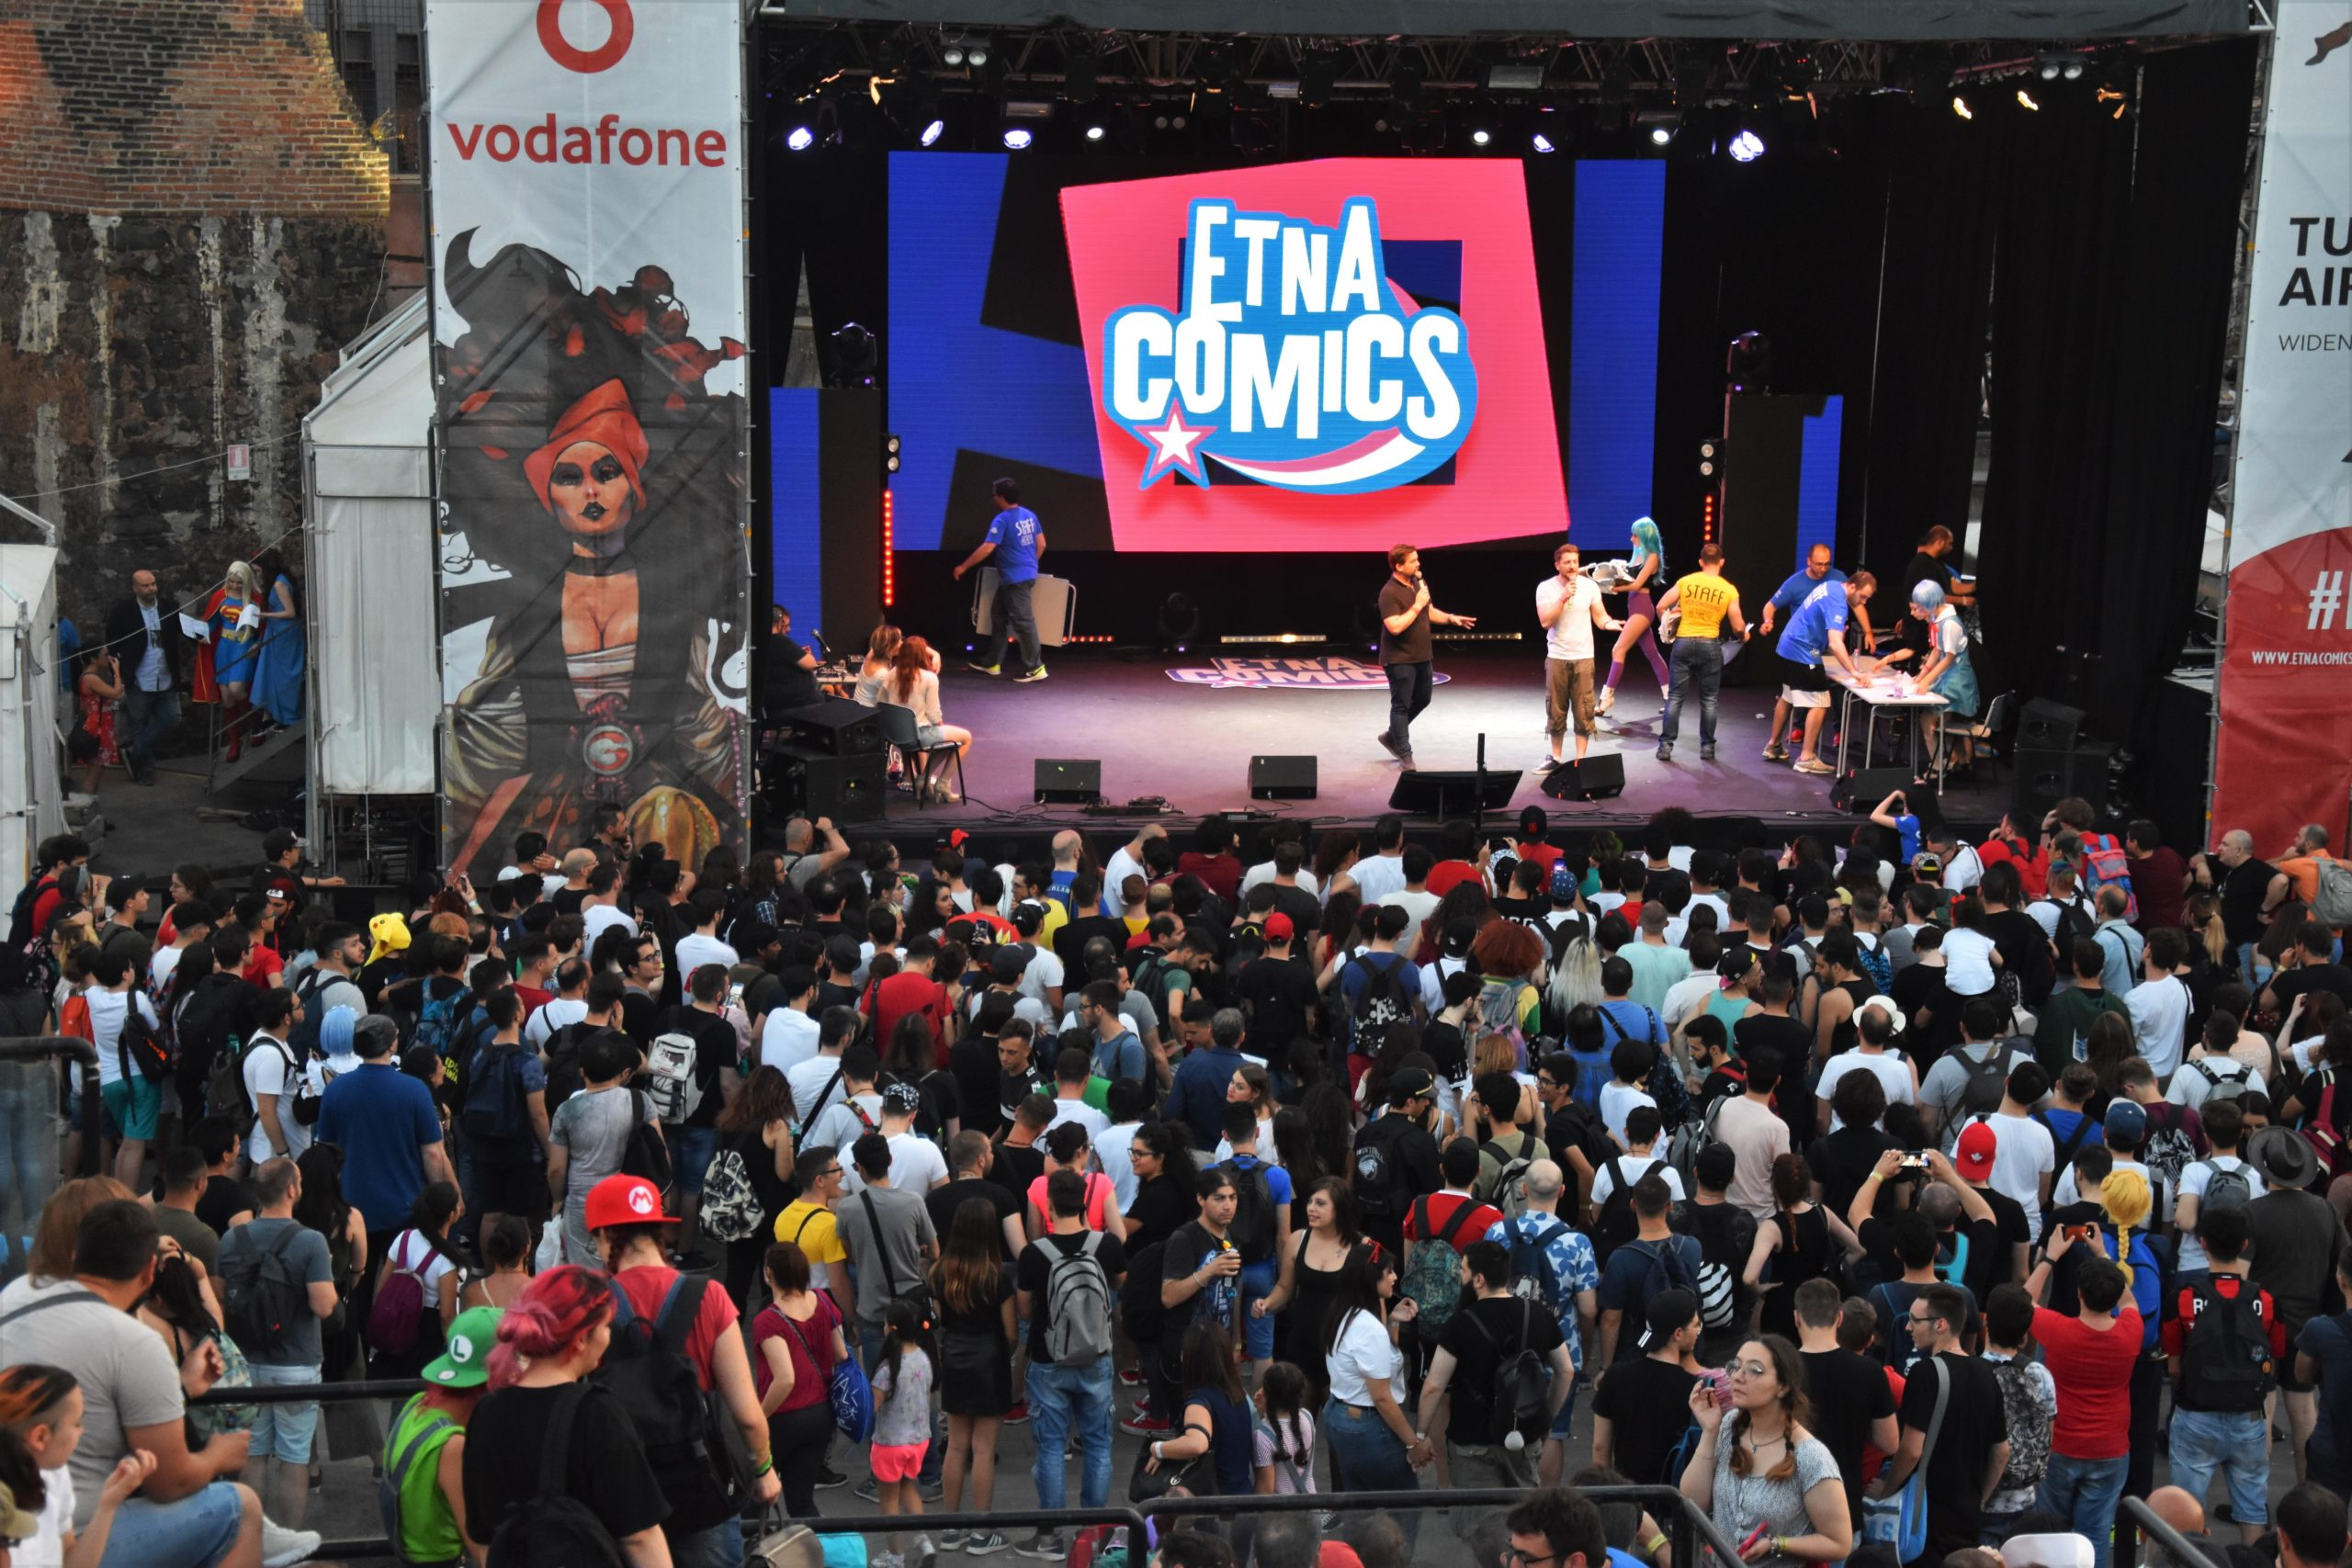 Vodafone Etna Comics 2019 Keo Marketing